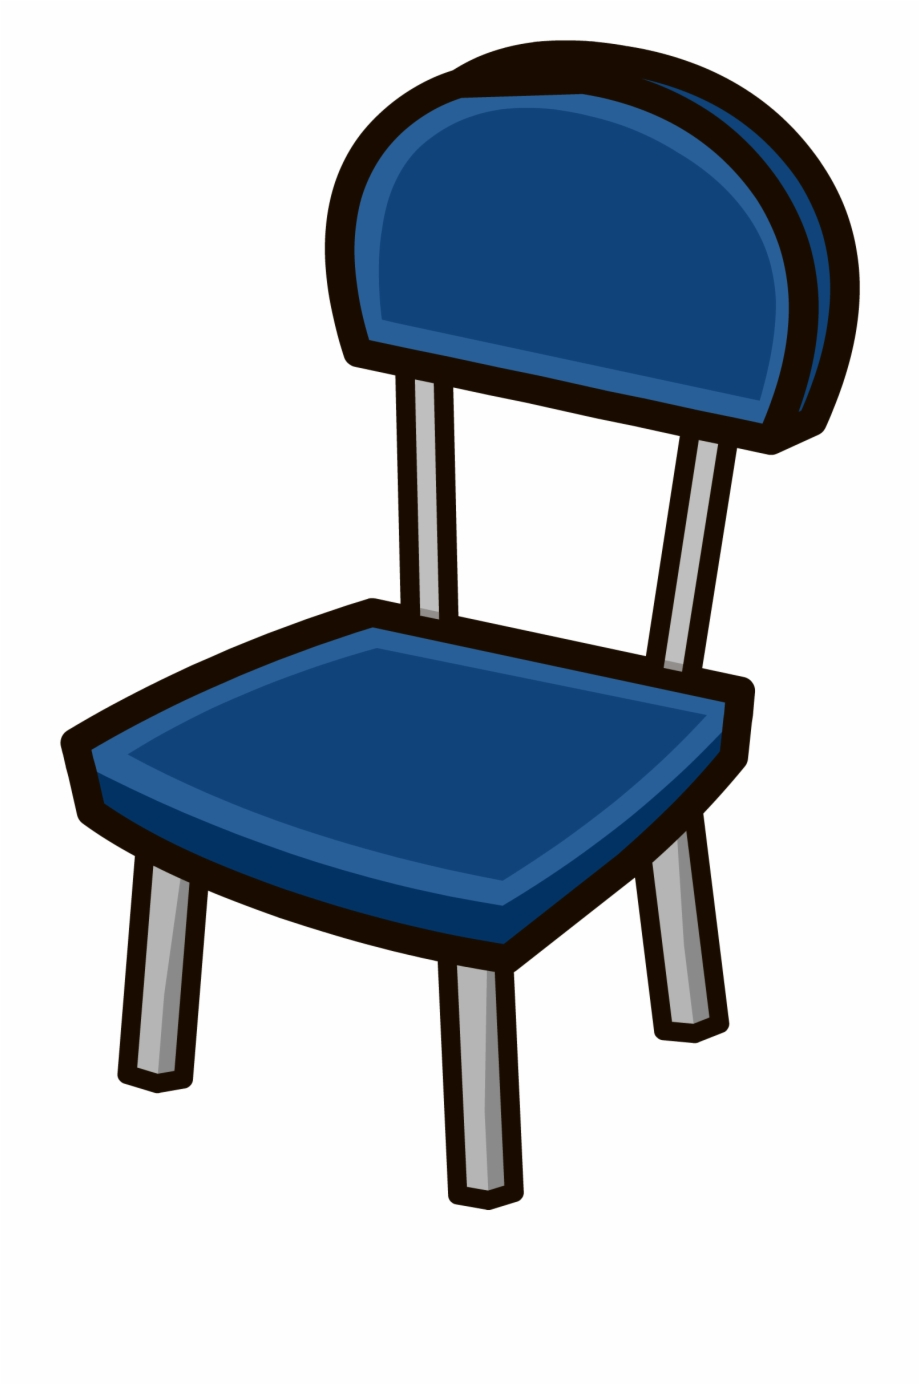 Blue chair clipart svg Chair Clipart Blue Chair - Blue Chair Clip Art Free PNG Images ... svg